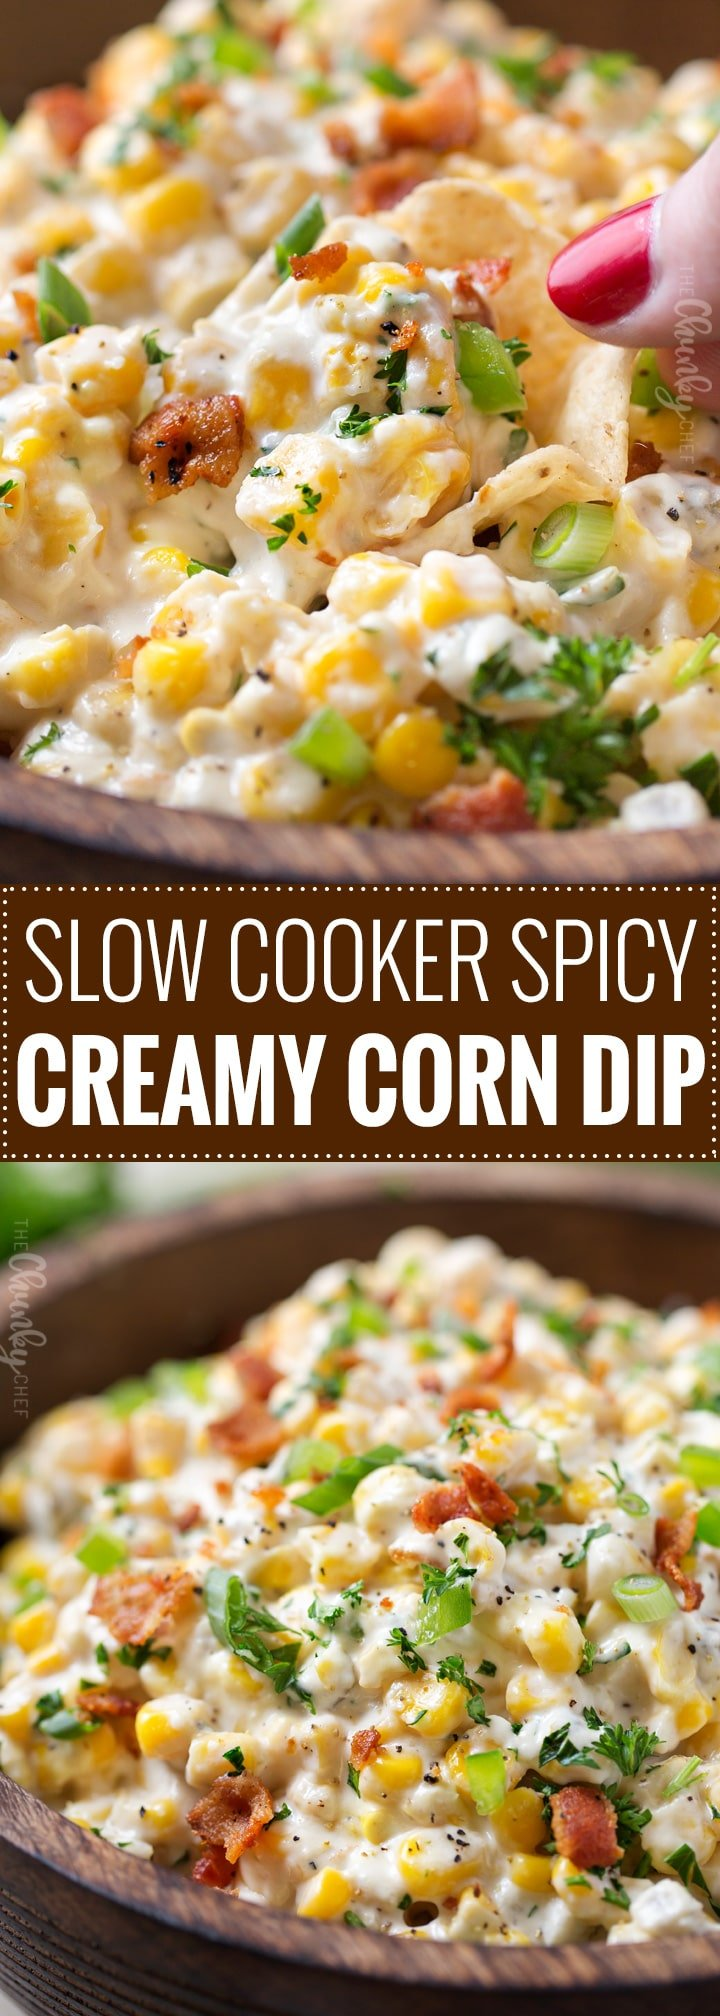 Slow Cooker Spicy Creamy Corn Dip | The easiest, creamy corn dip ever!  Toss the ingredients in the slow cooker and be amazed at how mouthwatering it tastes! | https://thechunkychef.com | #corndip #slowcooker #crockpot #appetizerrecipe #partyfood